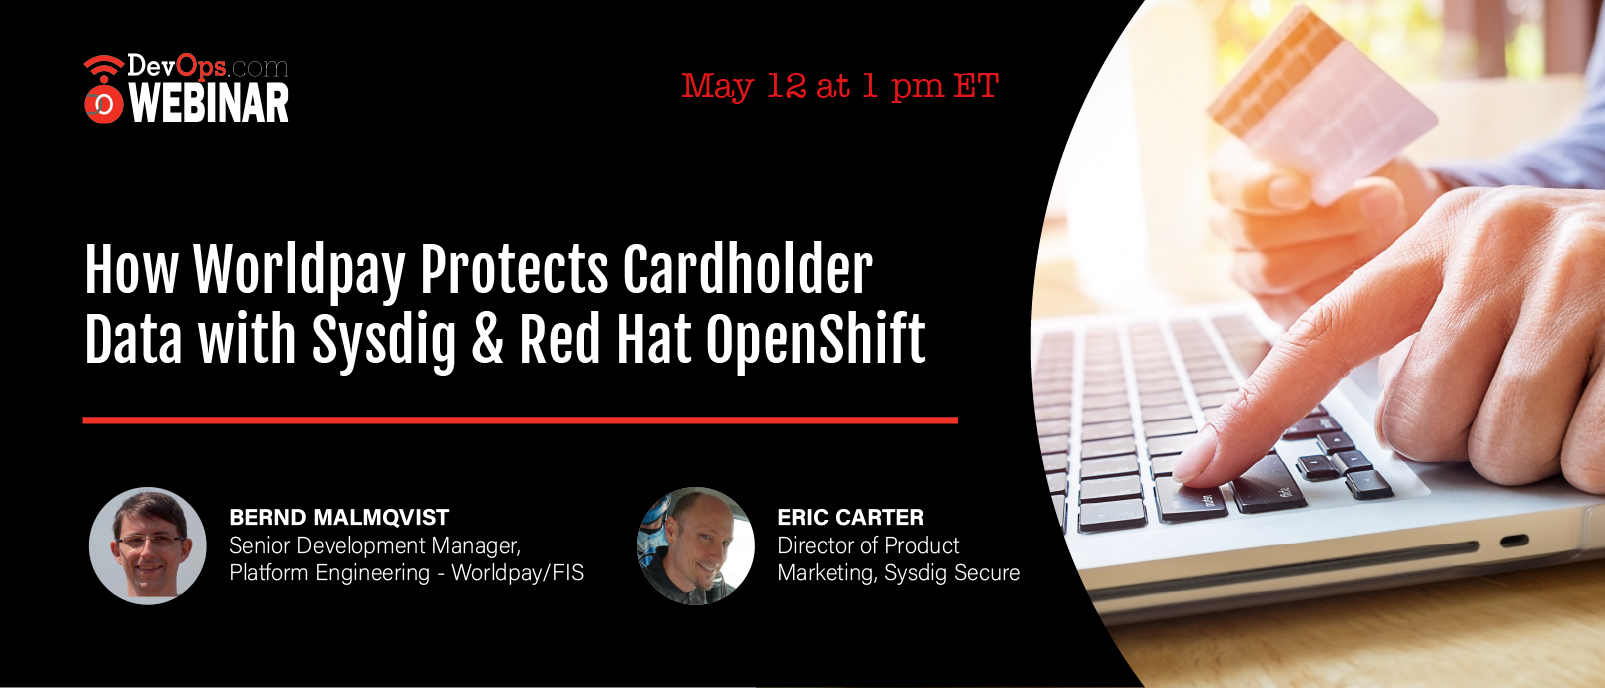 How Worldpay Protects Cardholder Data with Sysdig & Red Hat OpenShift